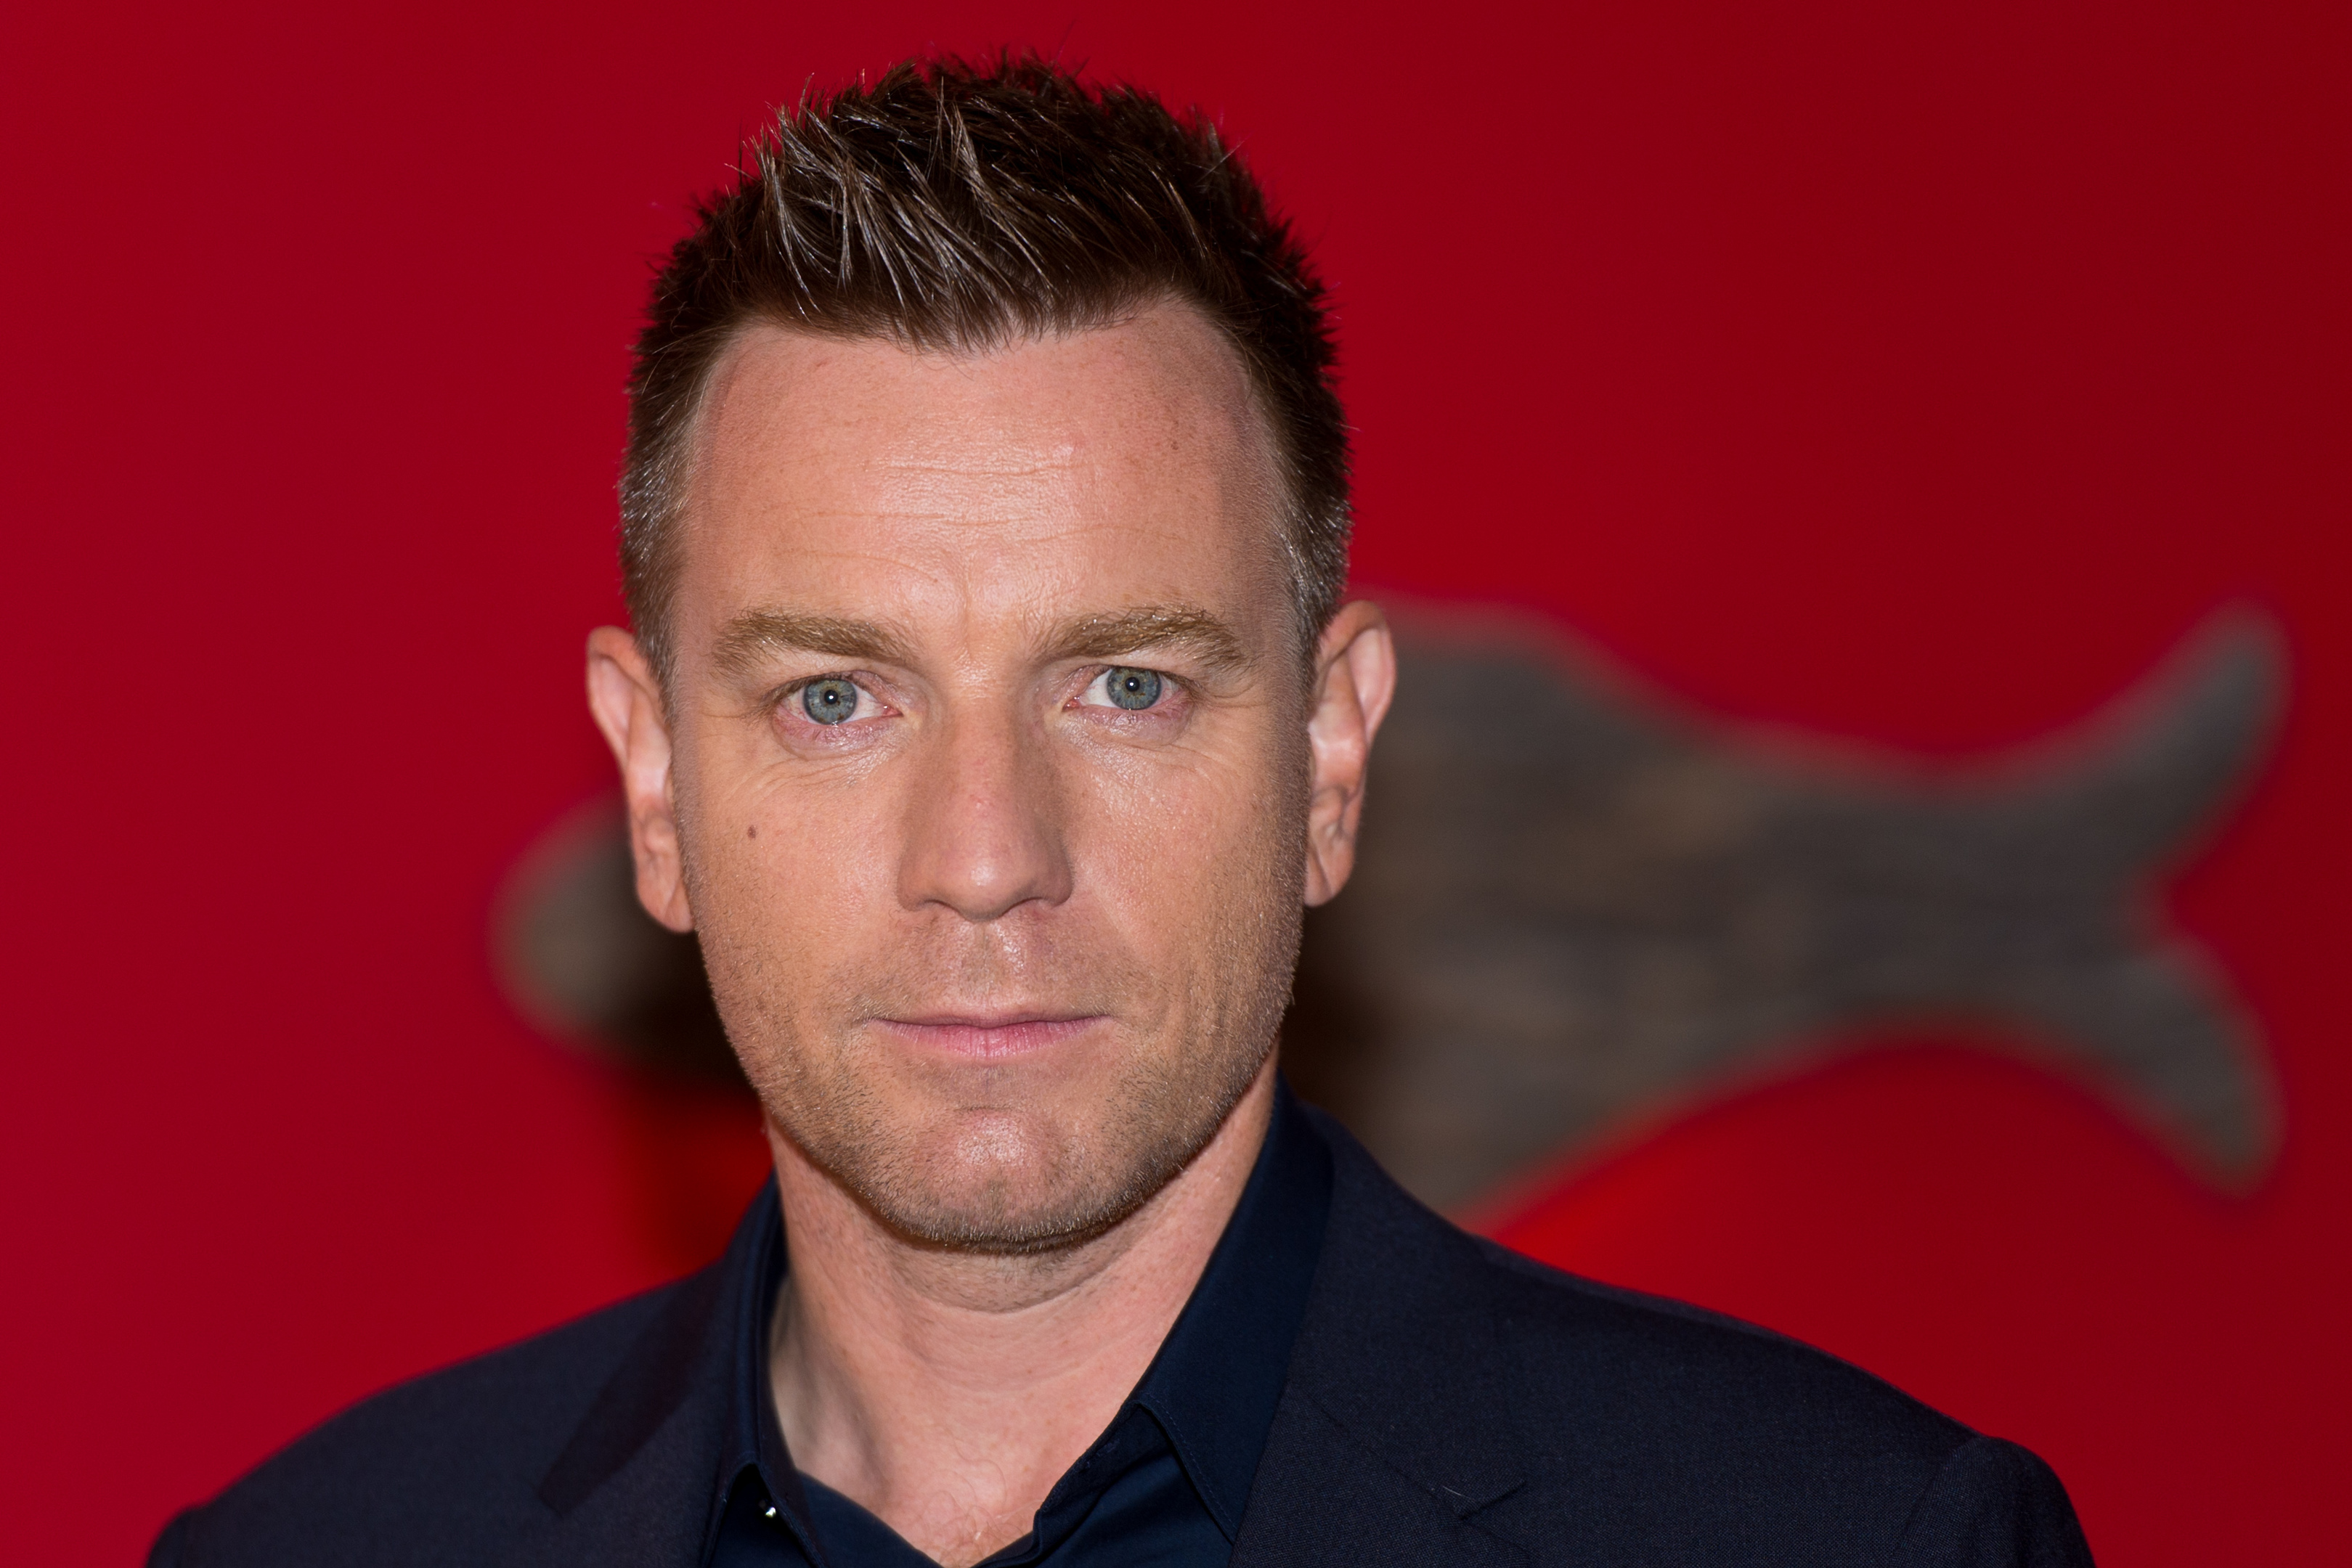 Ewan McGregor has a starring role in the magical Debenhams Christmas campaign (Ben A. Pruchnie/Getty Images)